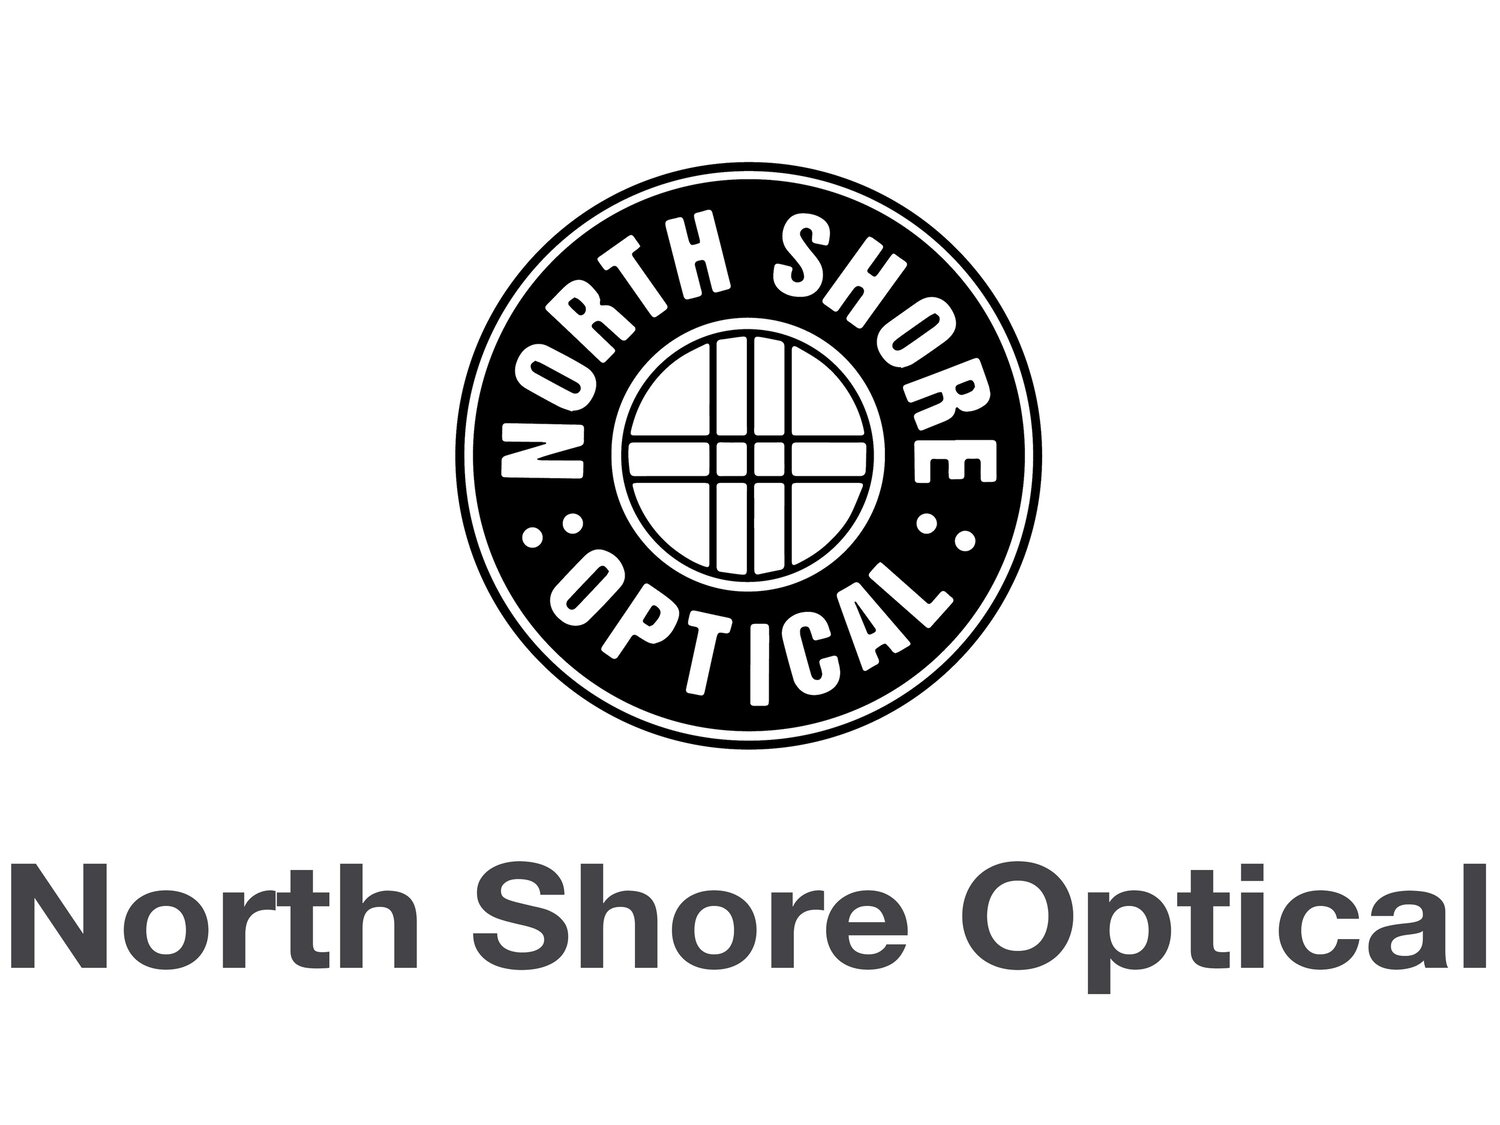 North Shore Optical